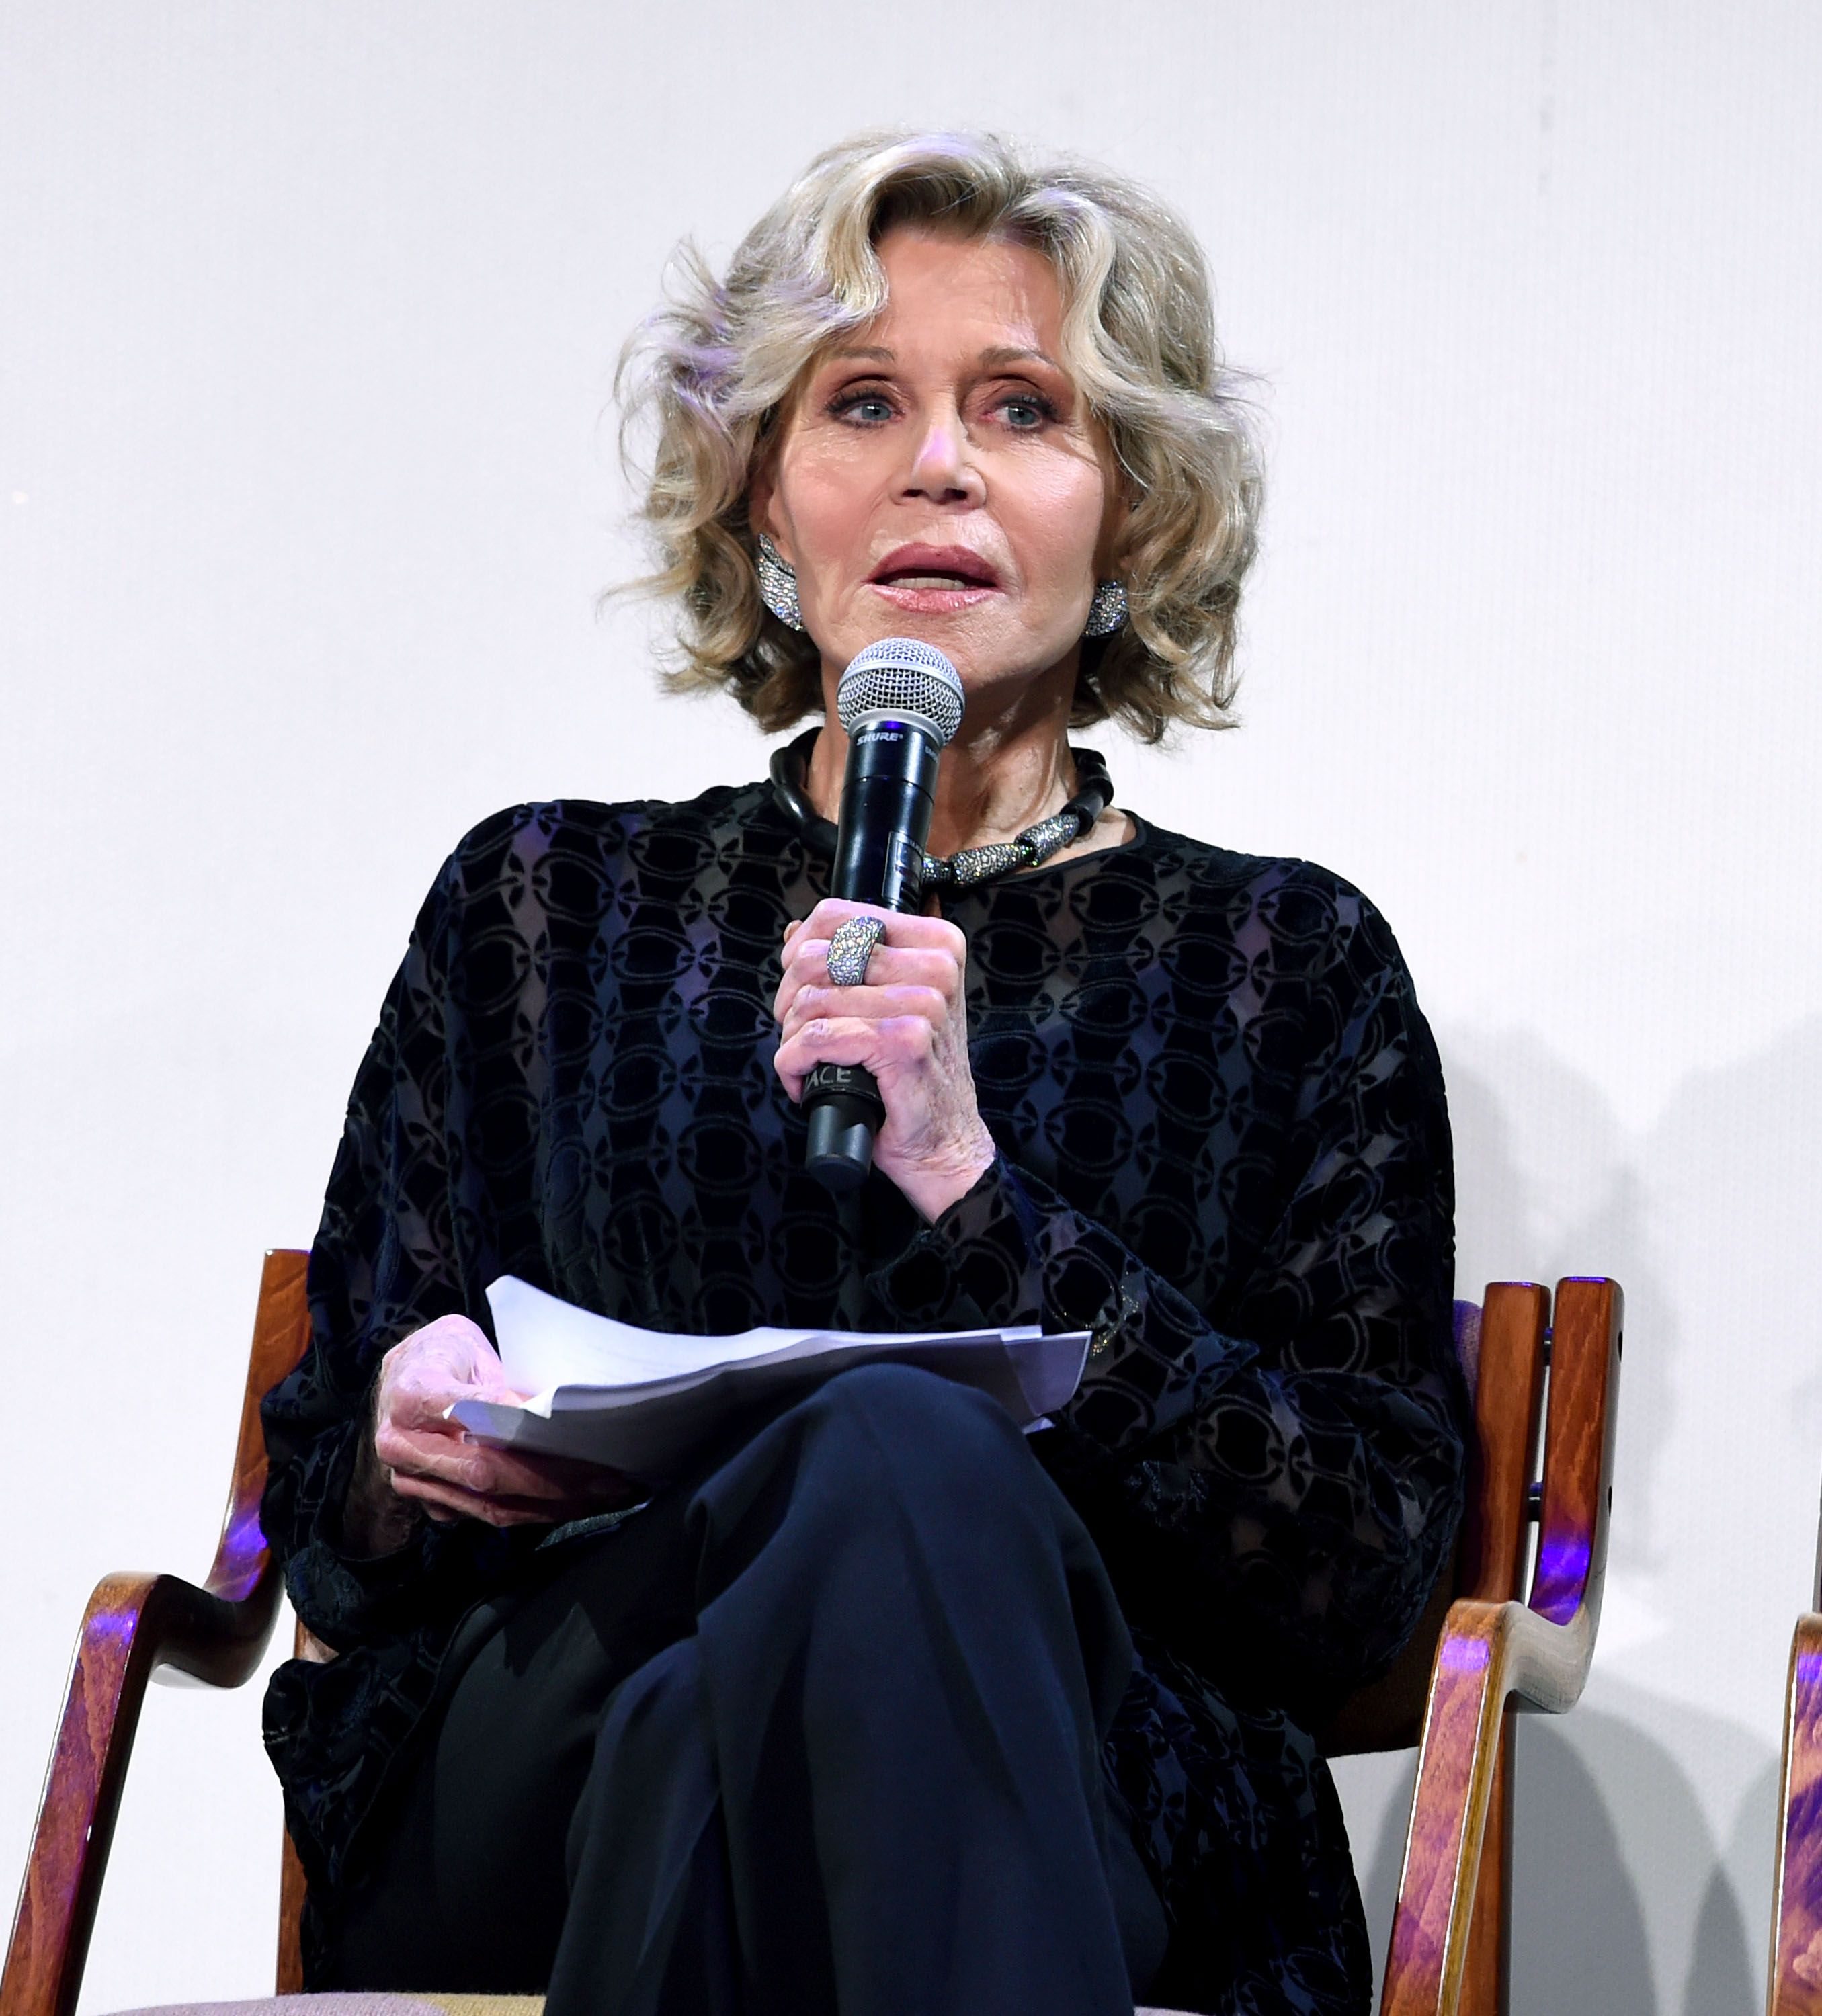 Jane Fonda Arrested While Protesting Climate Change at Capitol Building